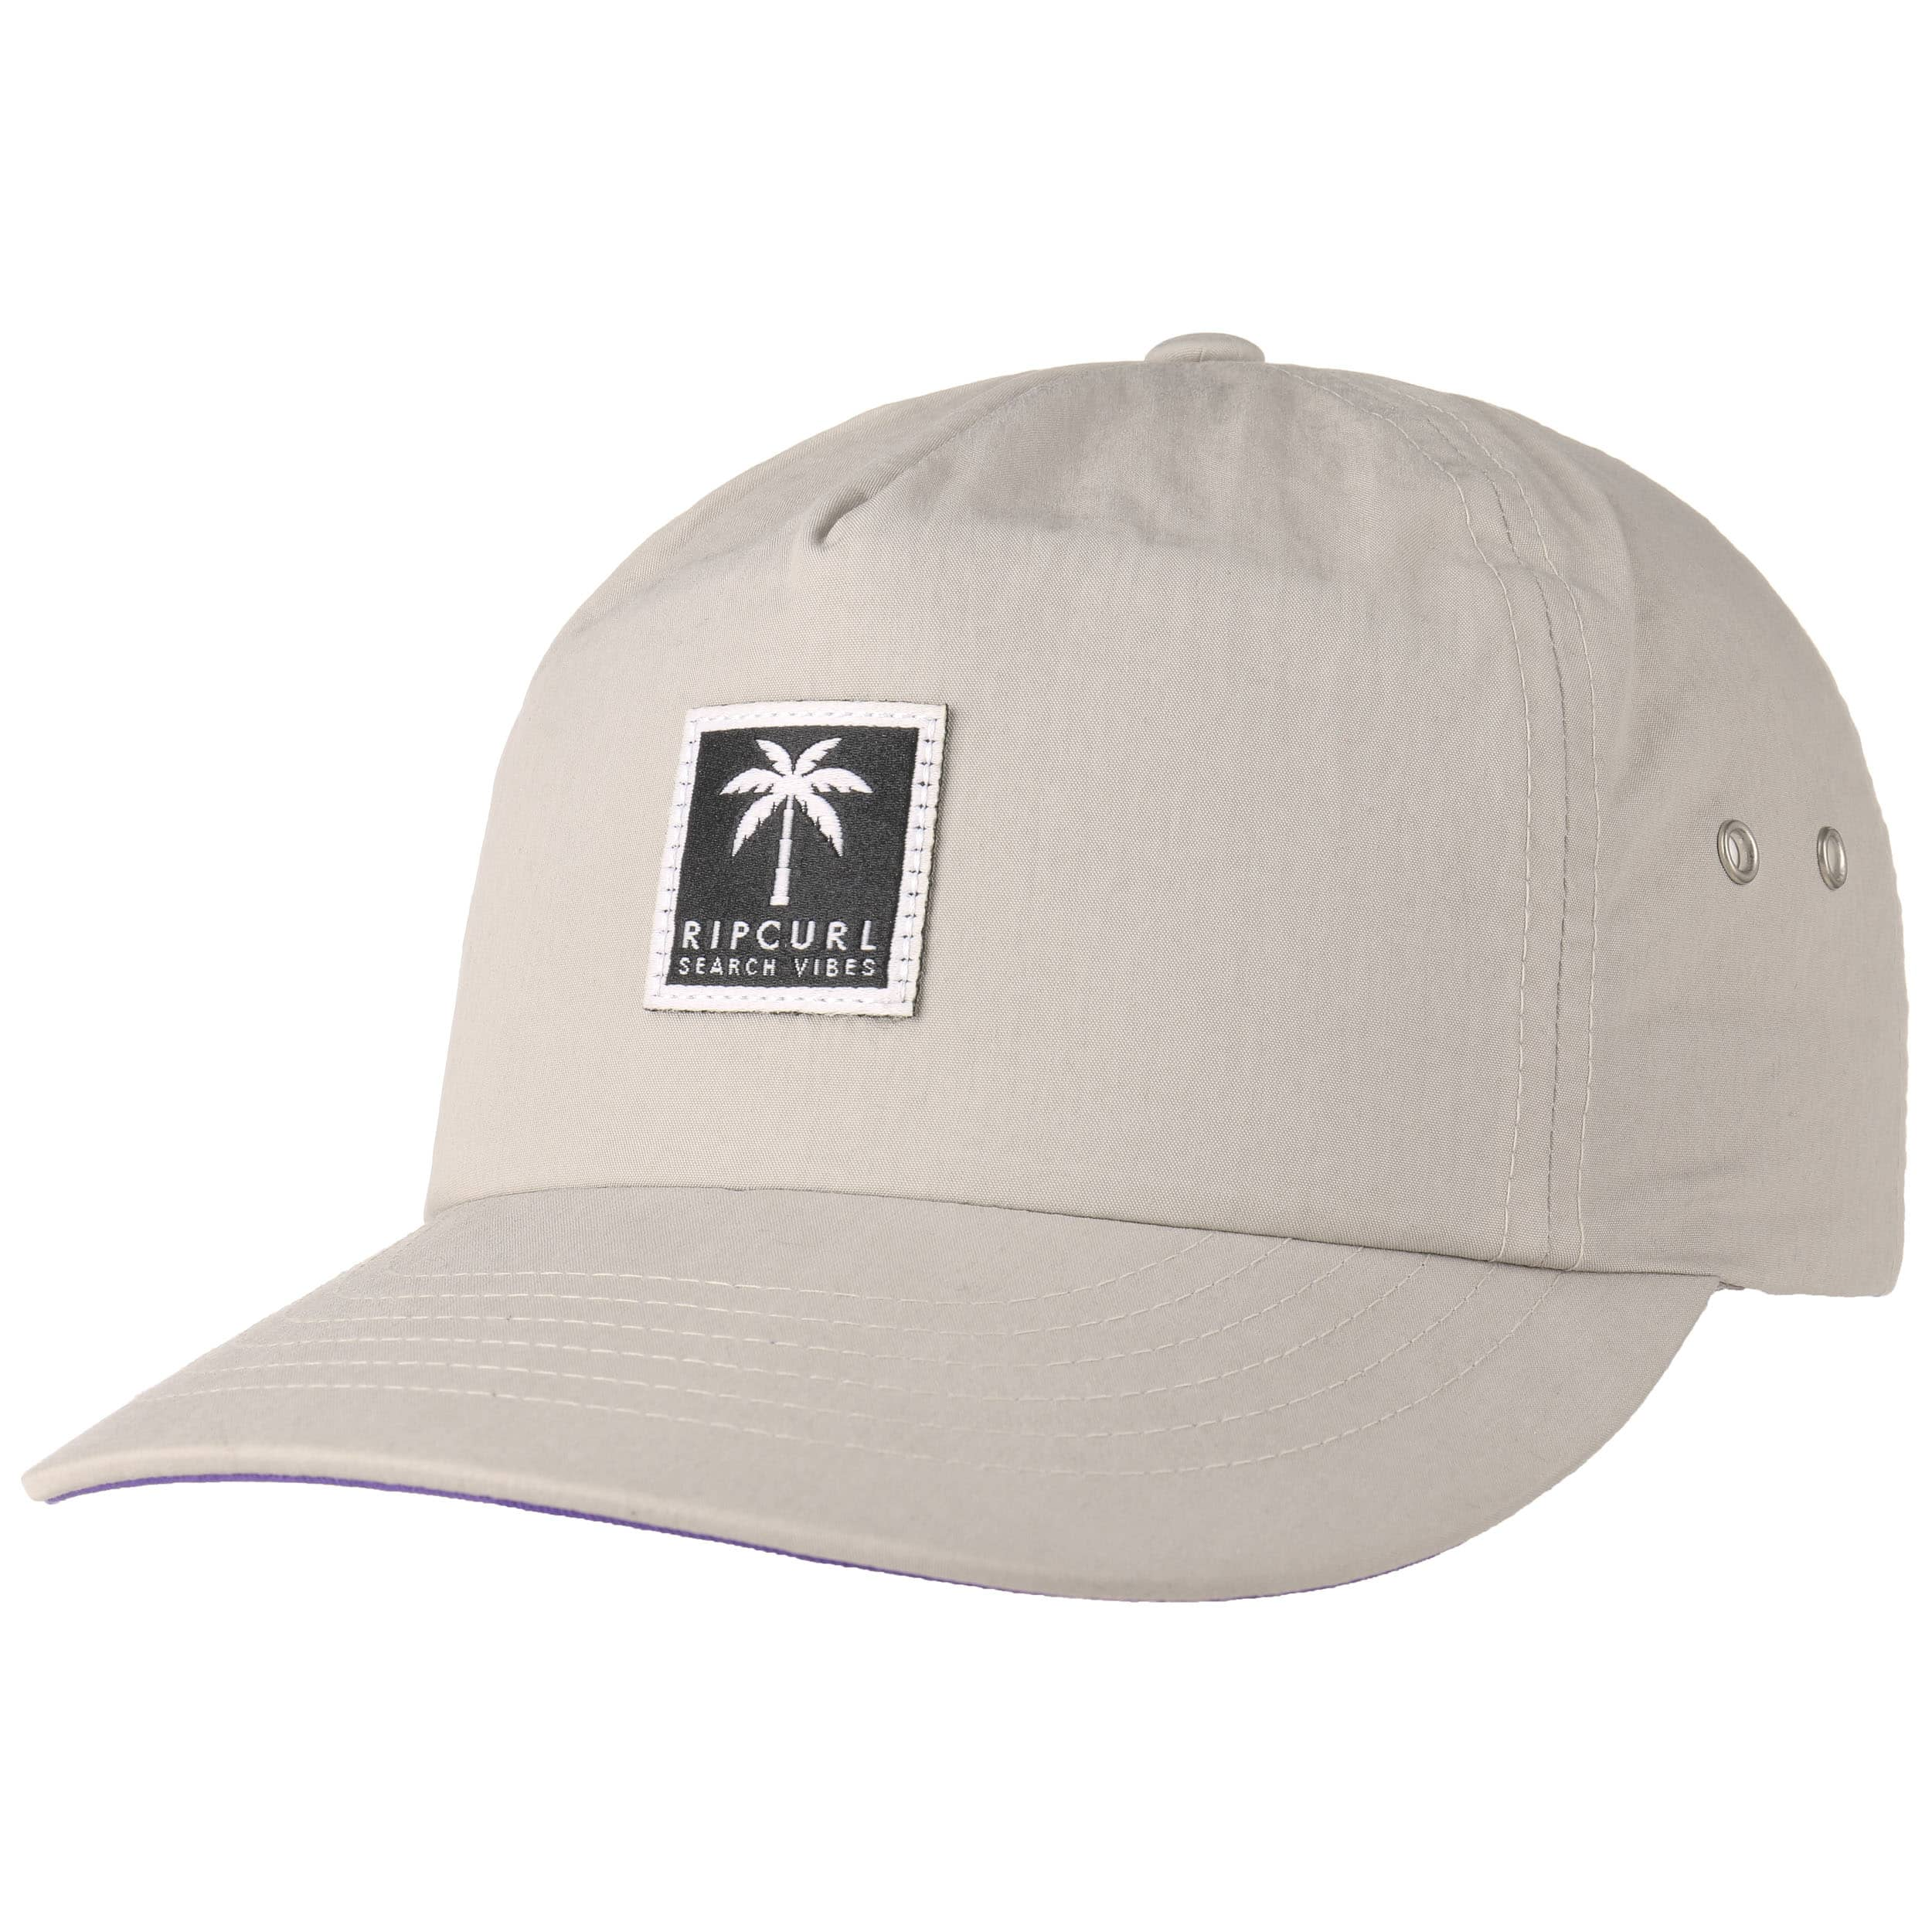 Search Vibes Strapback Cap. by Rip Curl 27a134797c1